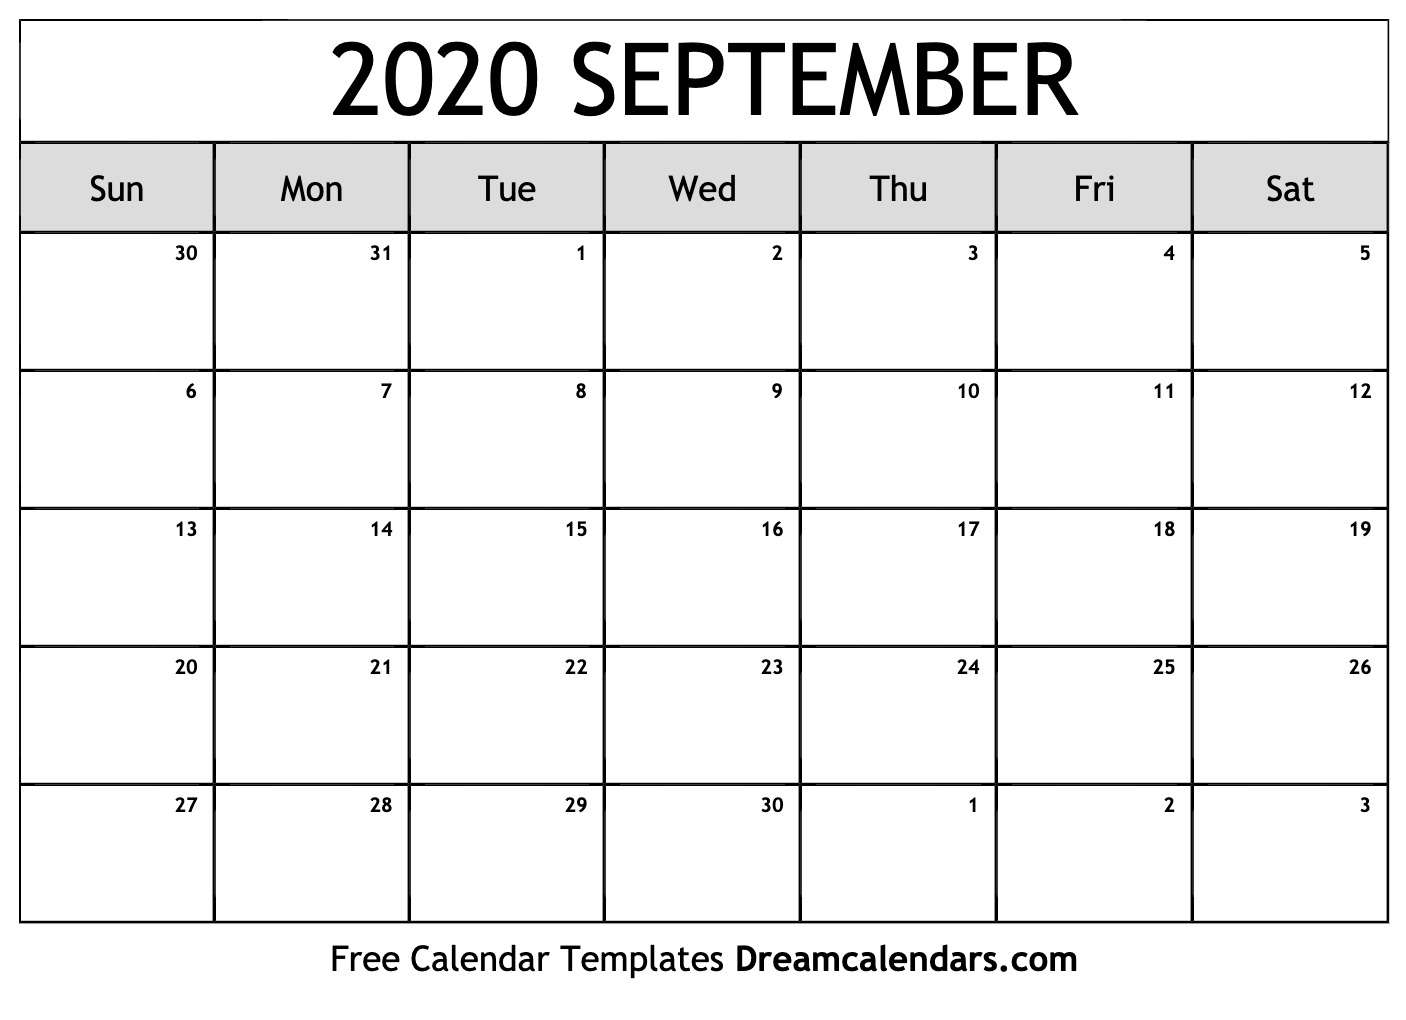 September 2020 Calendar With Holidays - Togo.wpart.co